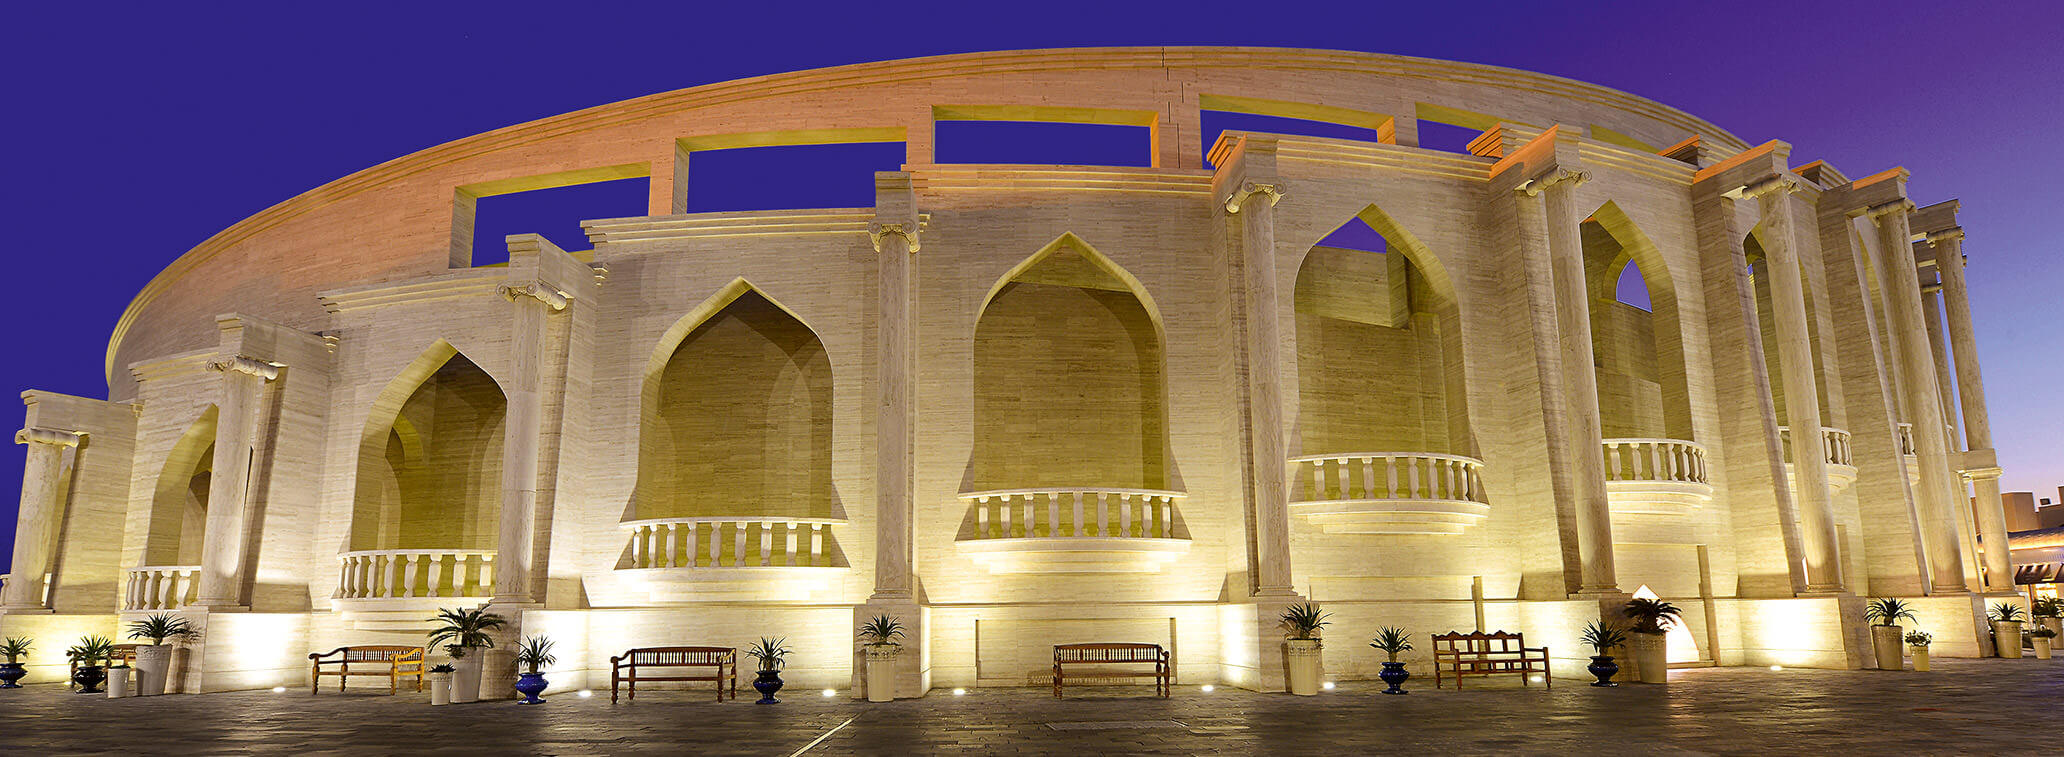 Photo of Katara Restaurant Owners Exempt From Rent and Fees